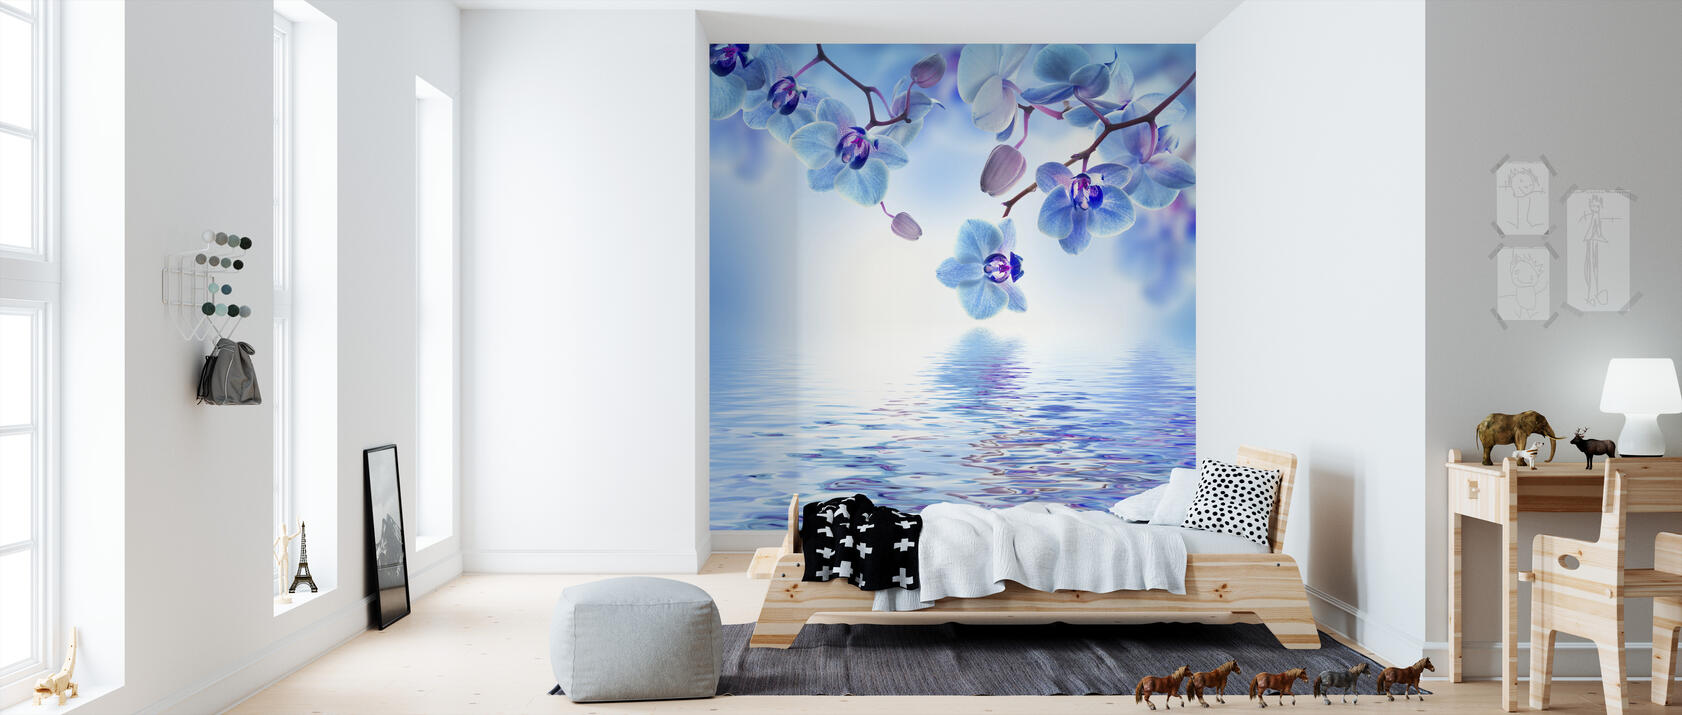 tropical blue orchid beliebte fototapete photowall. Black Bedroom Furniture Sets. Home Design Ideas